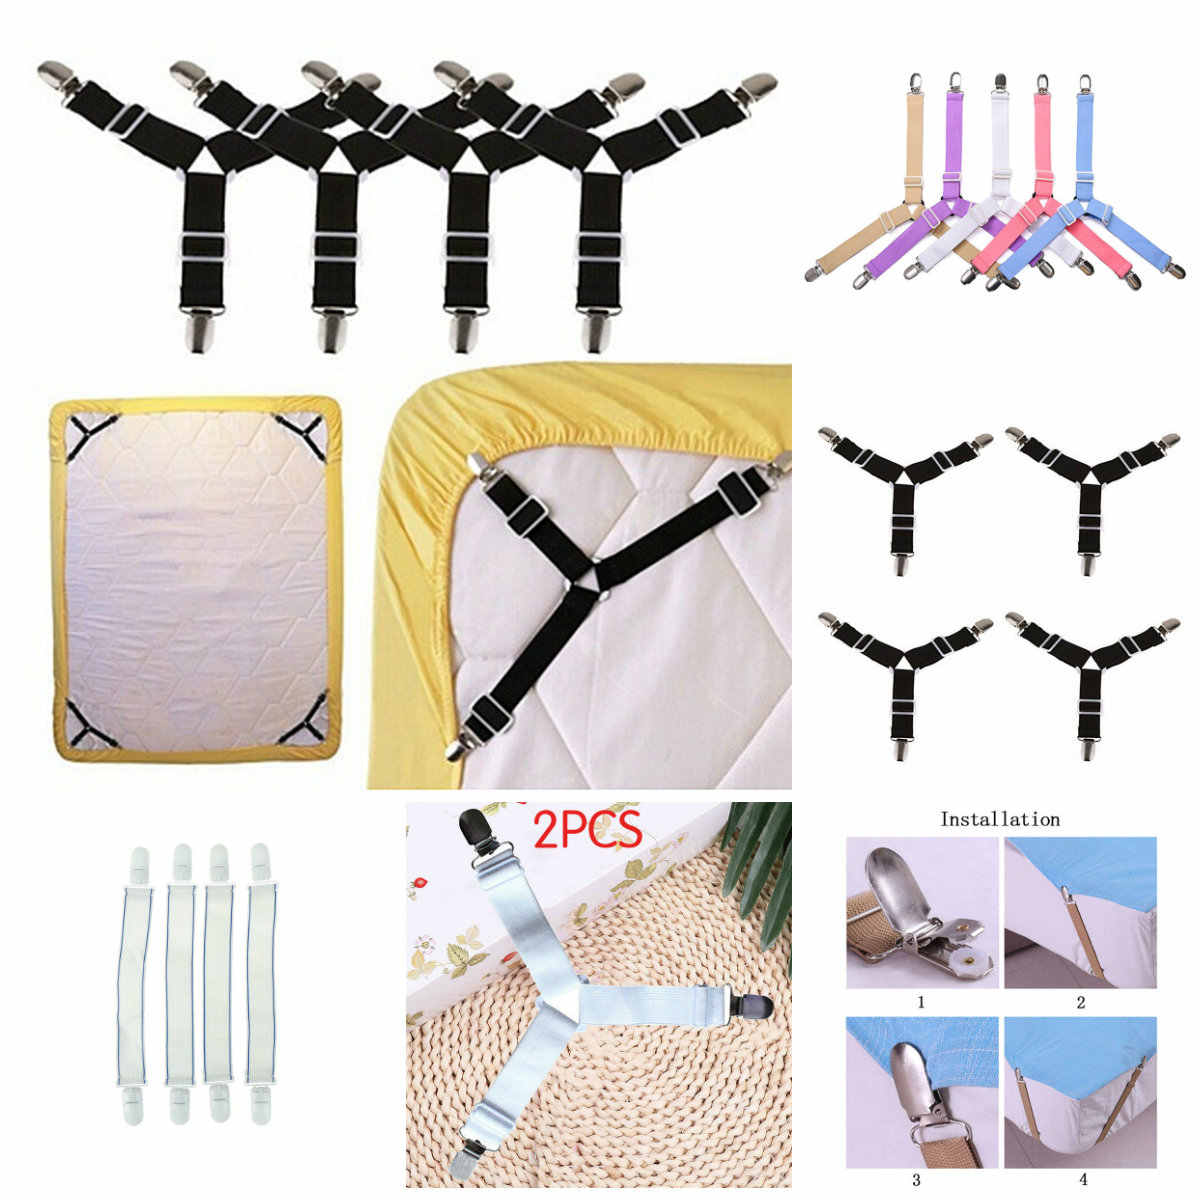 2/4 Pcs White/black Bed Sheet Mattress Cover Blankets Grippers Clip Holder Fasteners Elastic Set